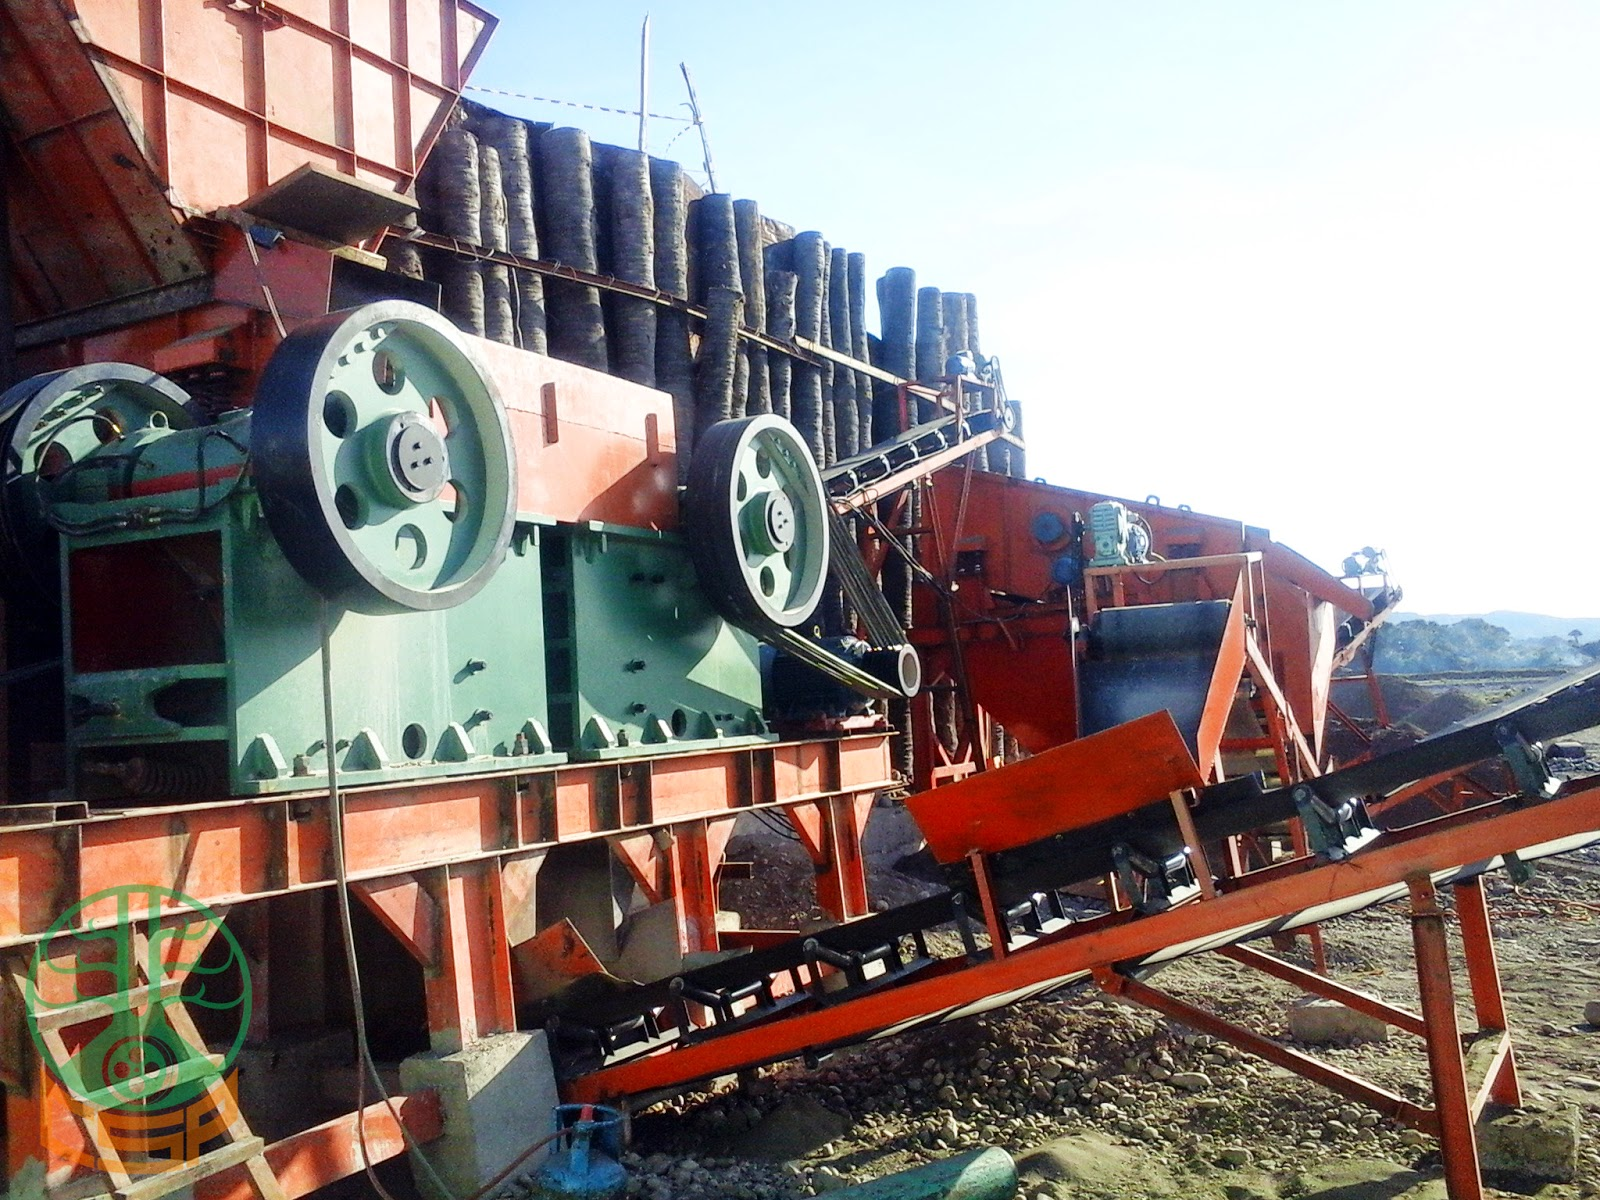 stone crushing plant project report Stone crusher plant project reportindia - assetcarecoin stone crusher plant project report india,solution for mining stone crusher project report india.